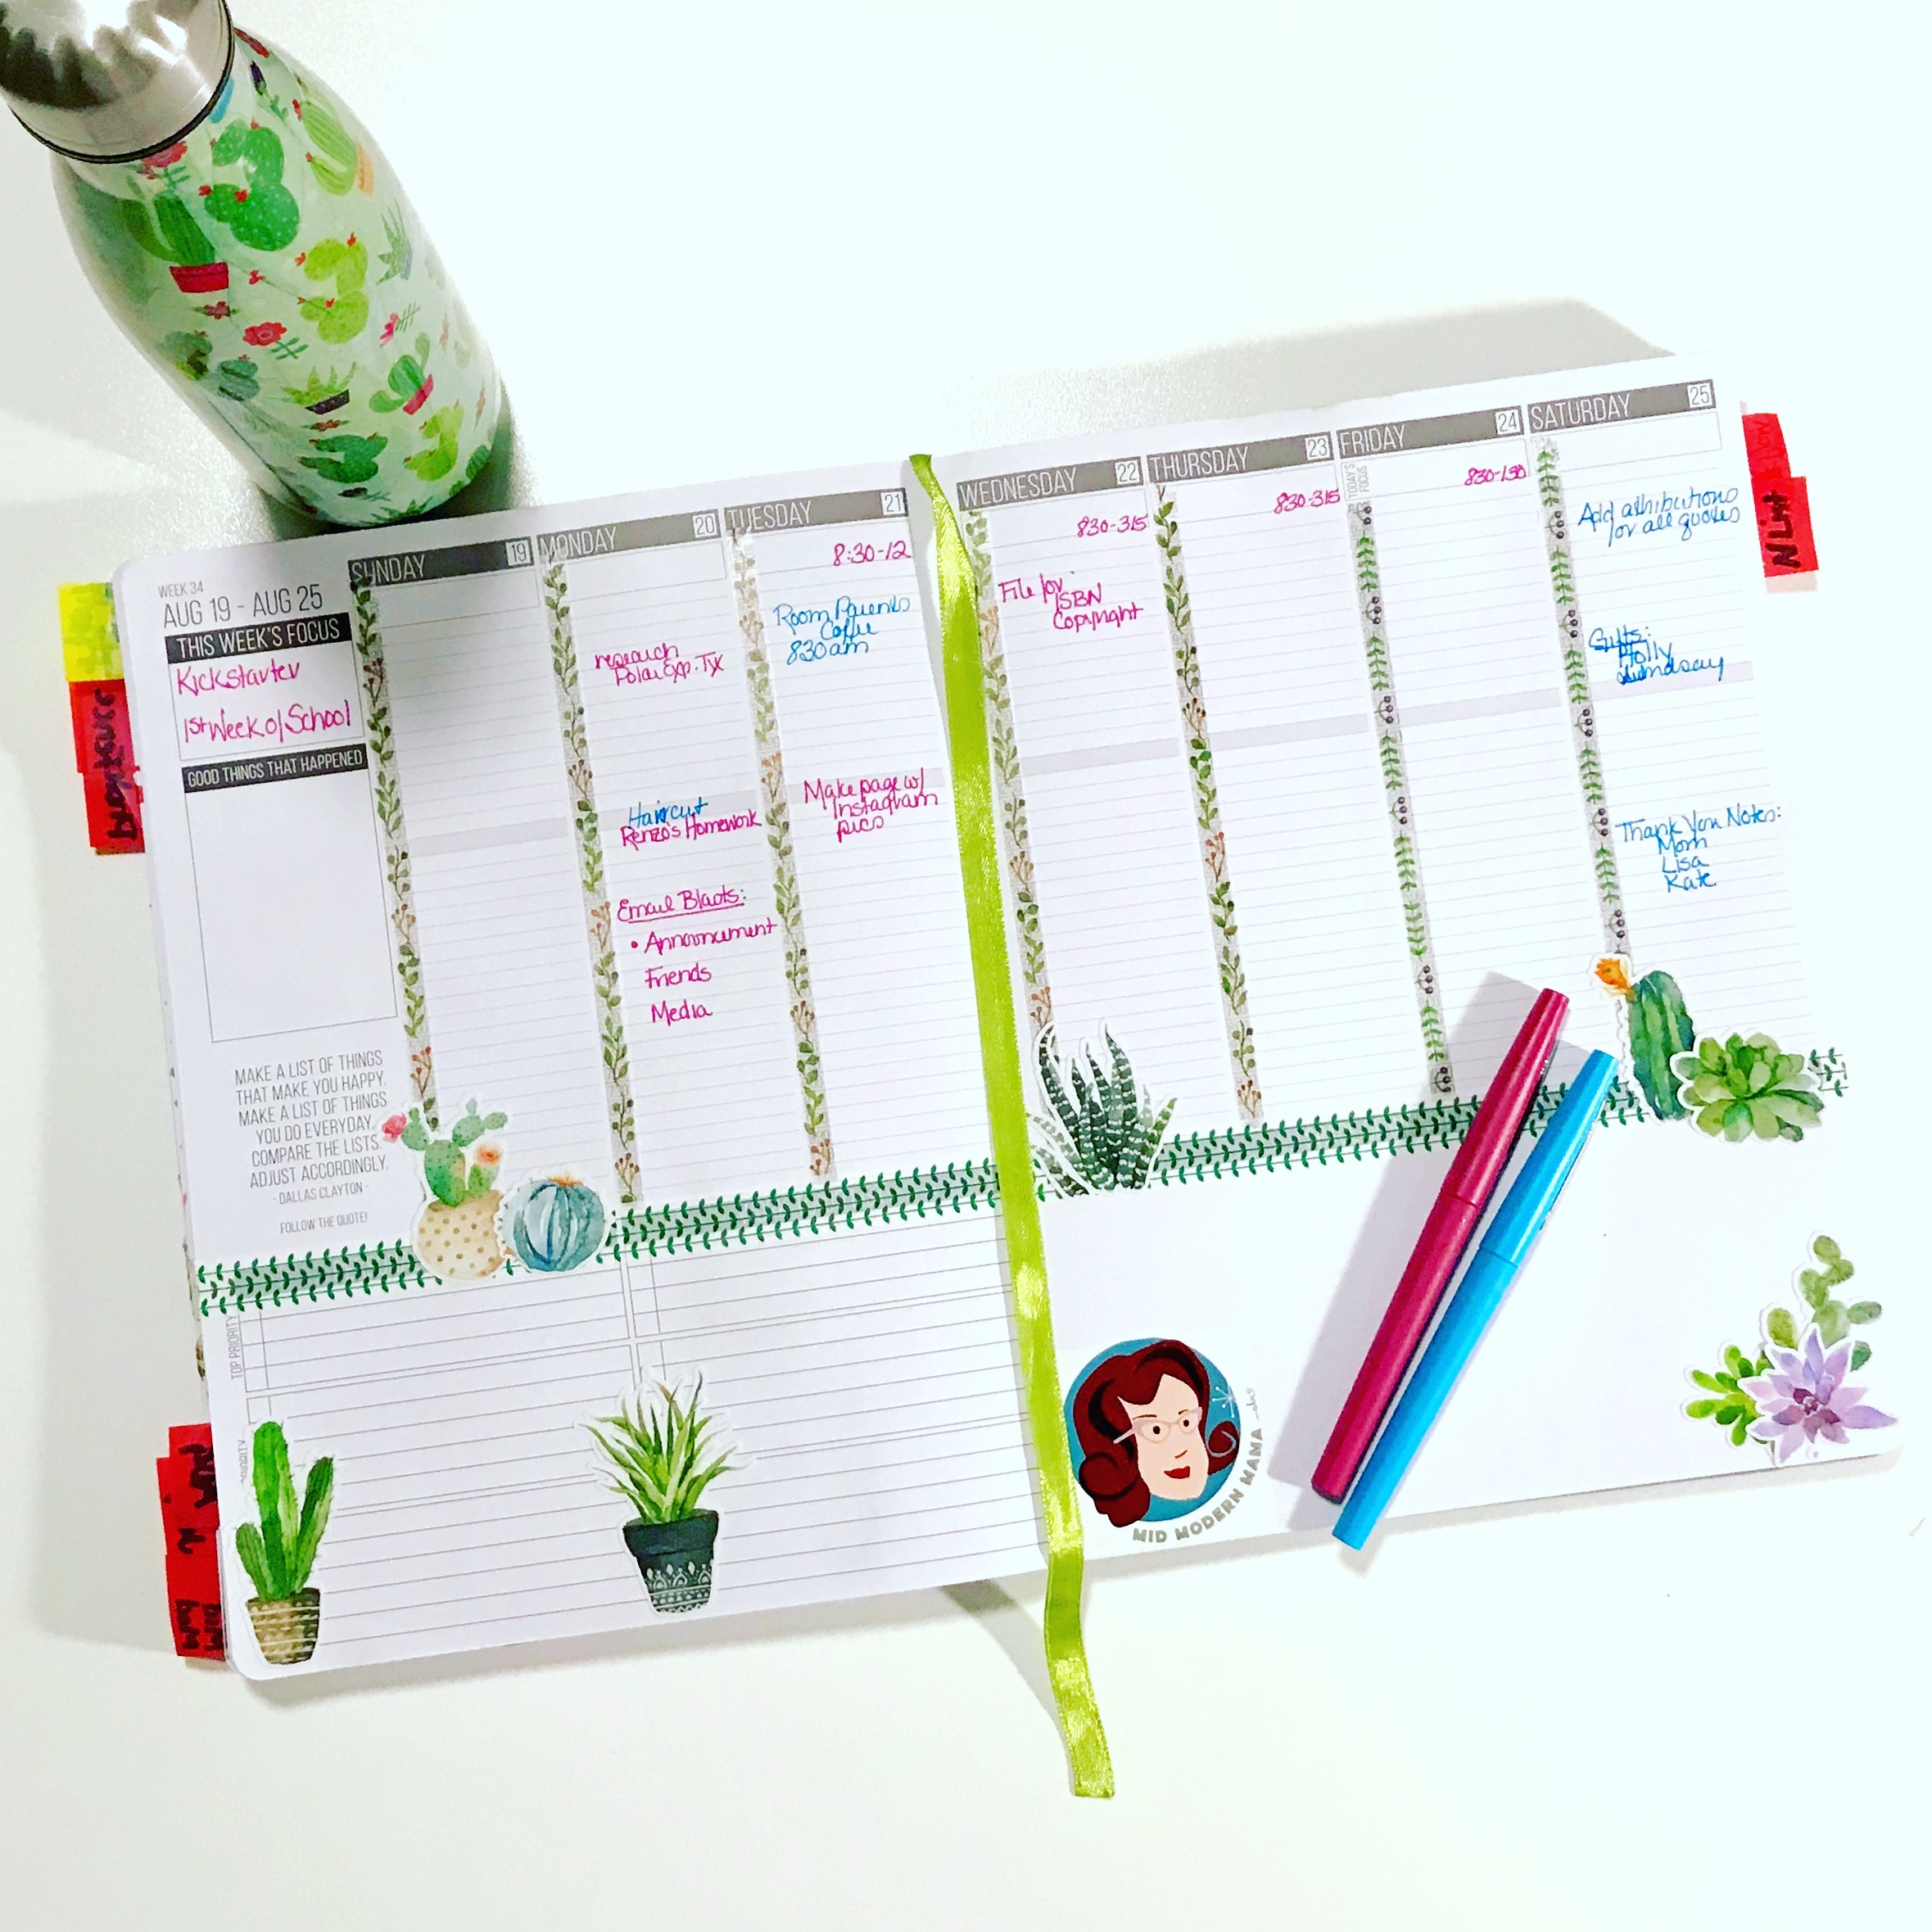 Tips and ideas for how to use a planner with Passion Planner examples for Moms, men, work, school, and students.